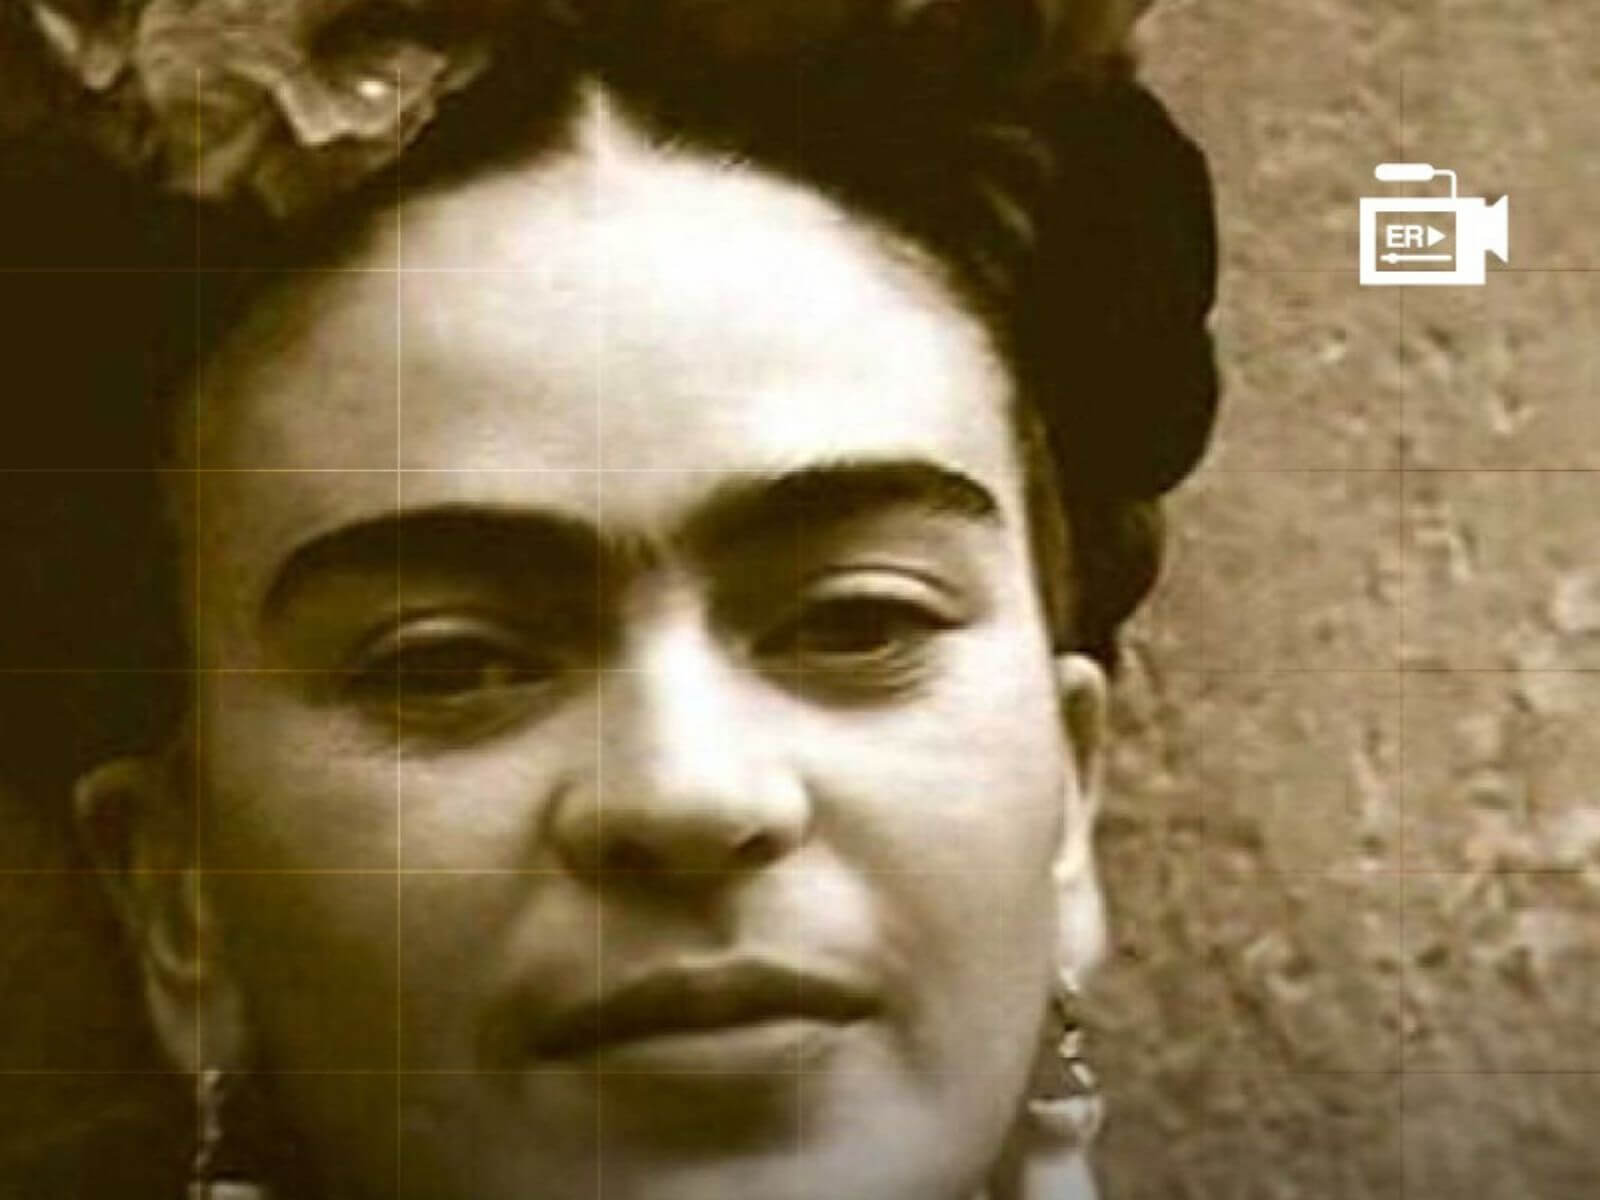 Frida Kahlo en audio: ¿Es su voz?